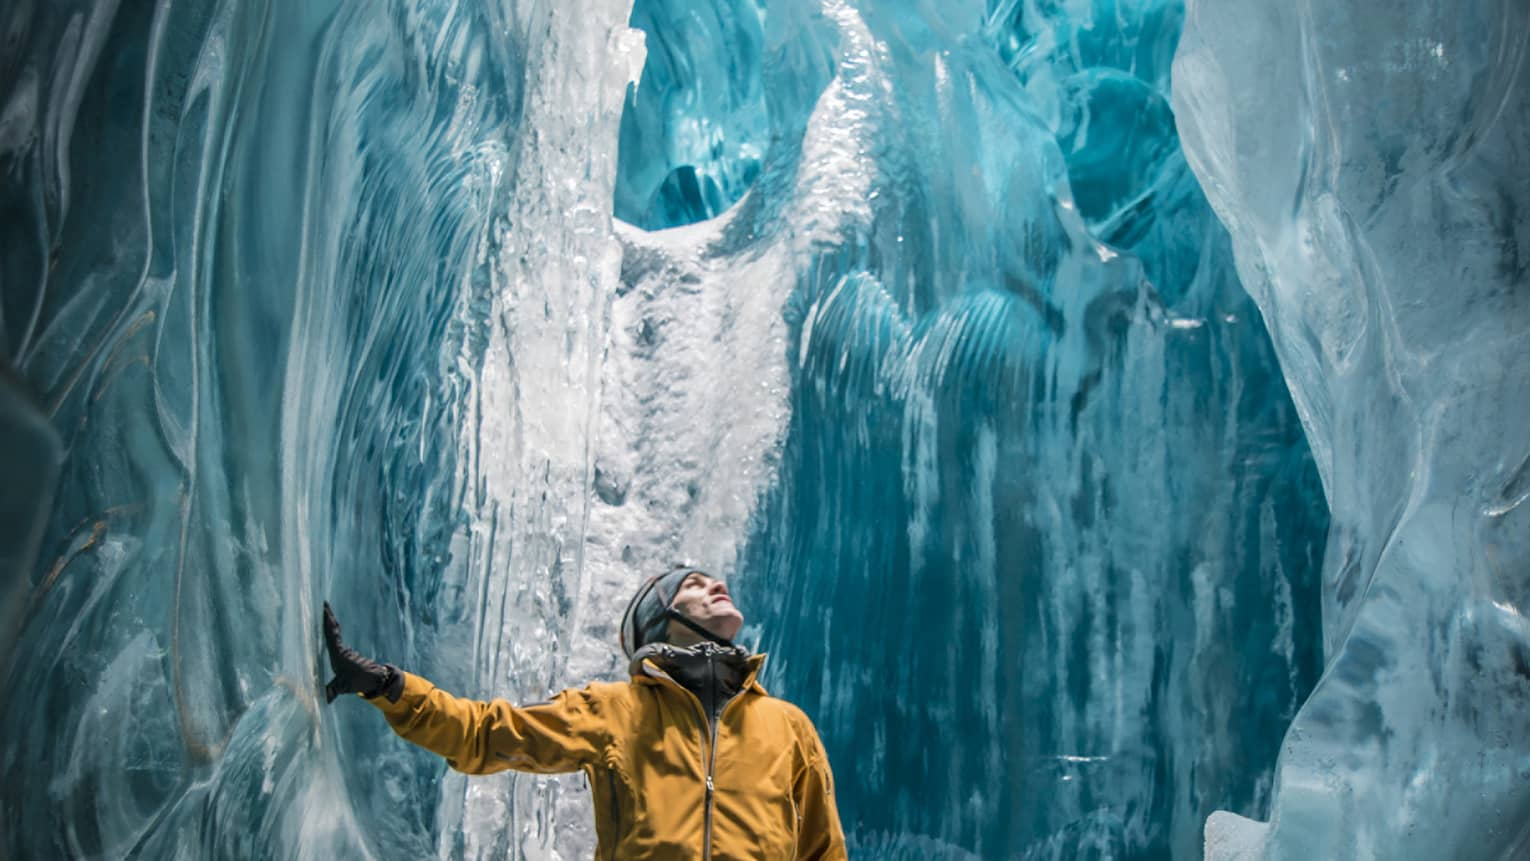 A man in a yellow winter coat explores a vast cave of translucent ice